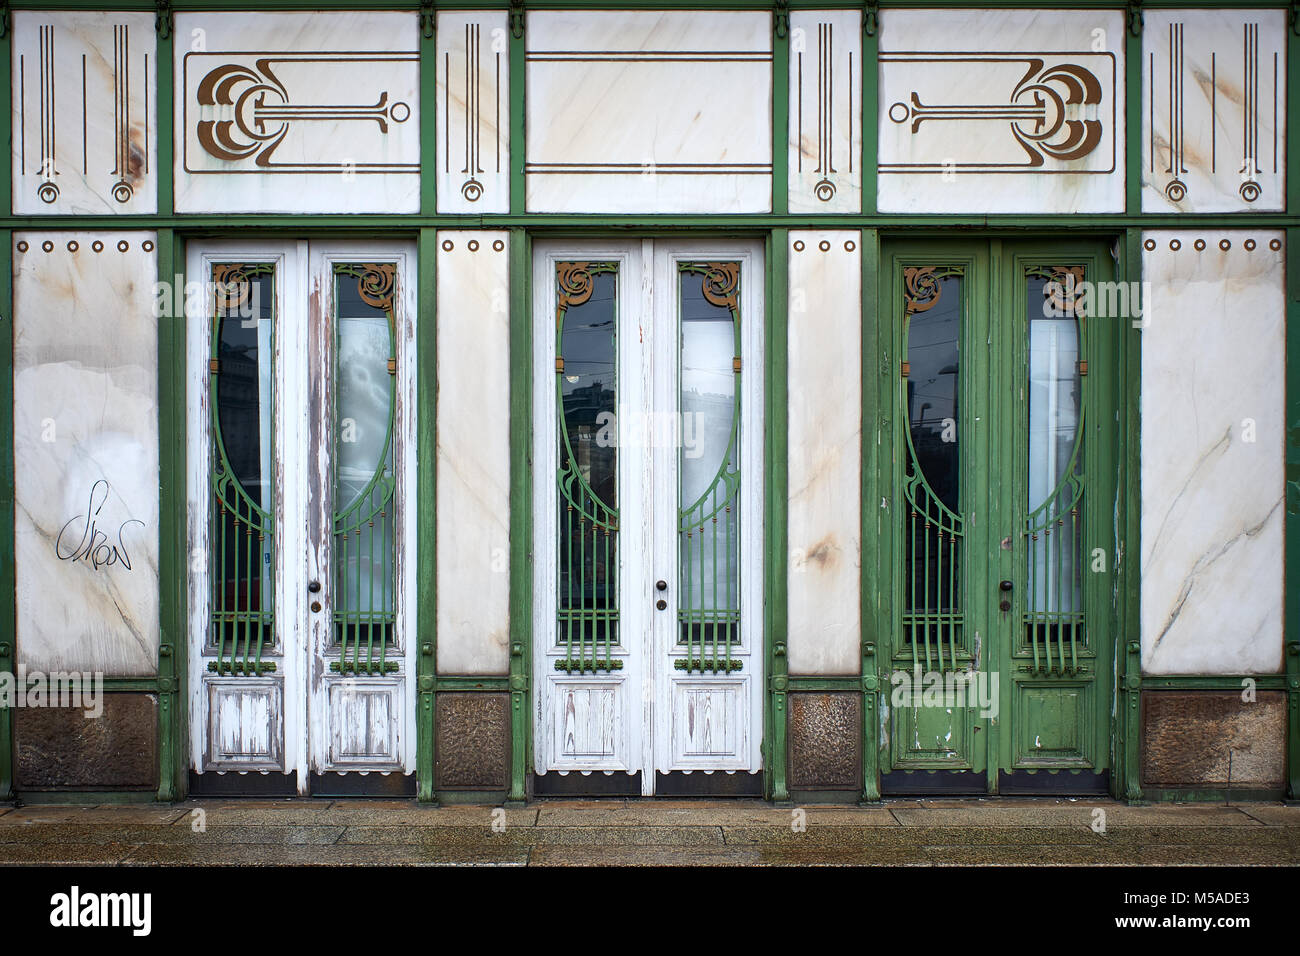 Looking through three doors of the Viennese art nouveau Stadtbahn pavilion at Karlsplatz in Vienna & Karlsplatz Winter Stock Photos \u0026 Karlsplatz Winter Stock Images - Alamy